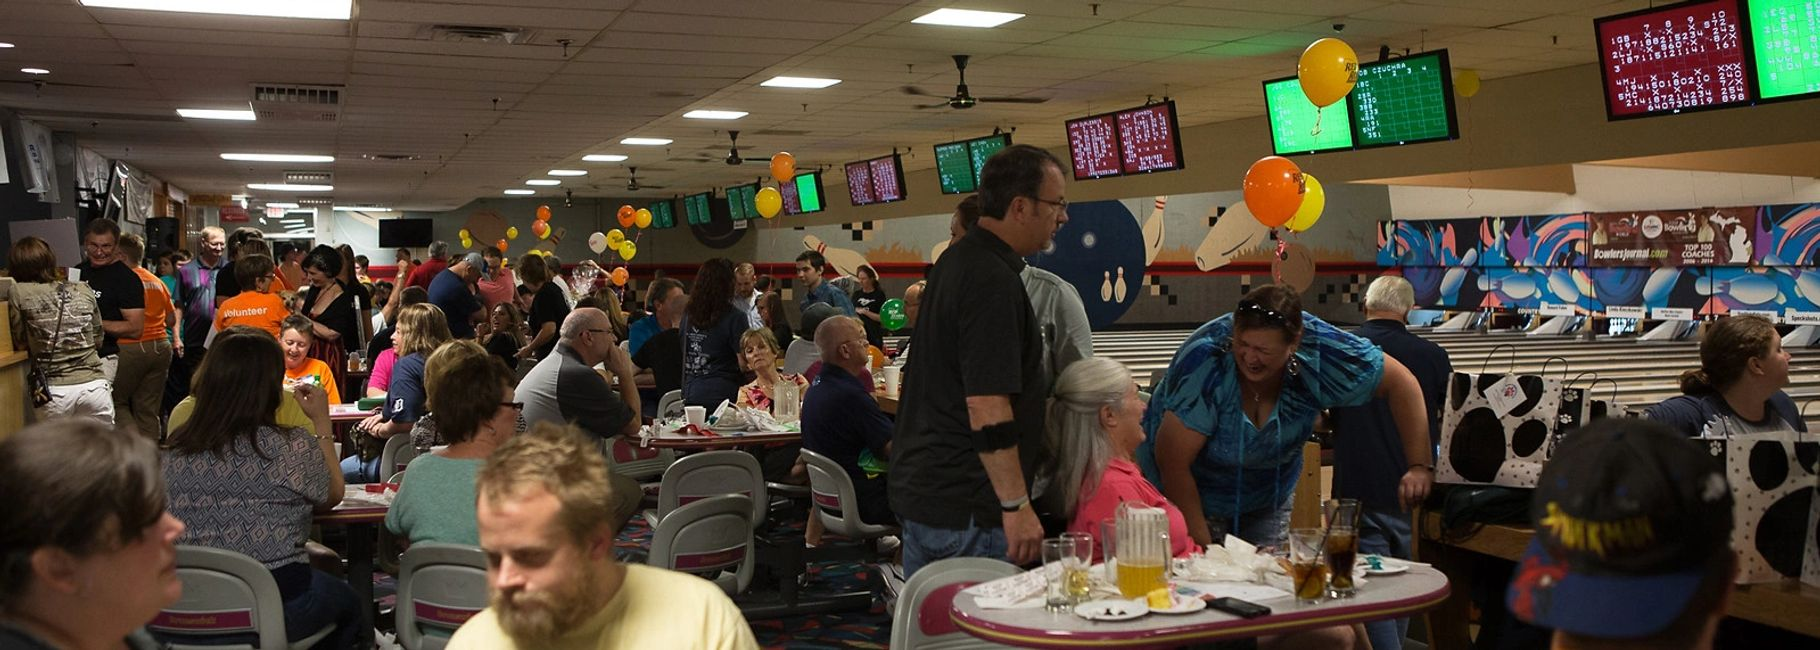 A party at our bowling party venue located near Livonia, MI